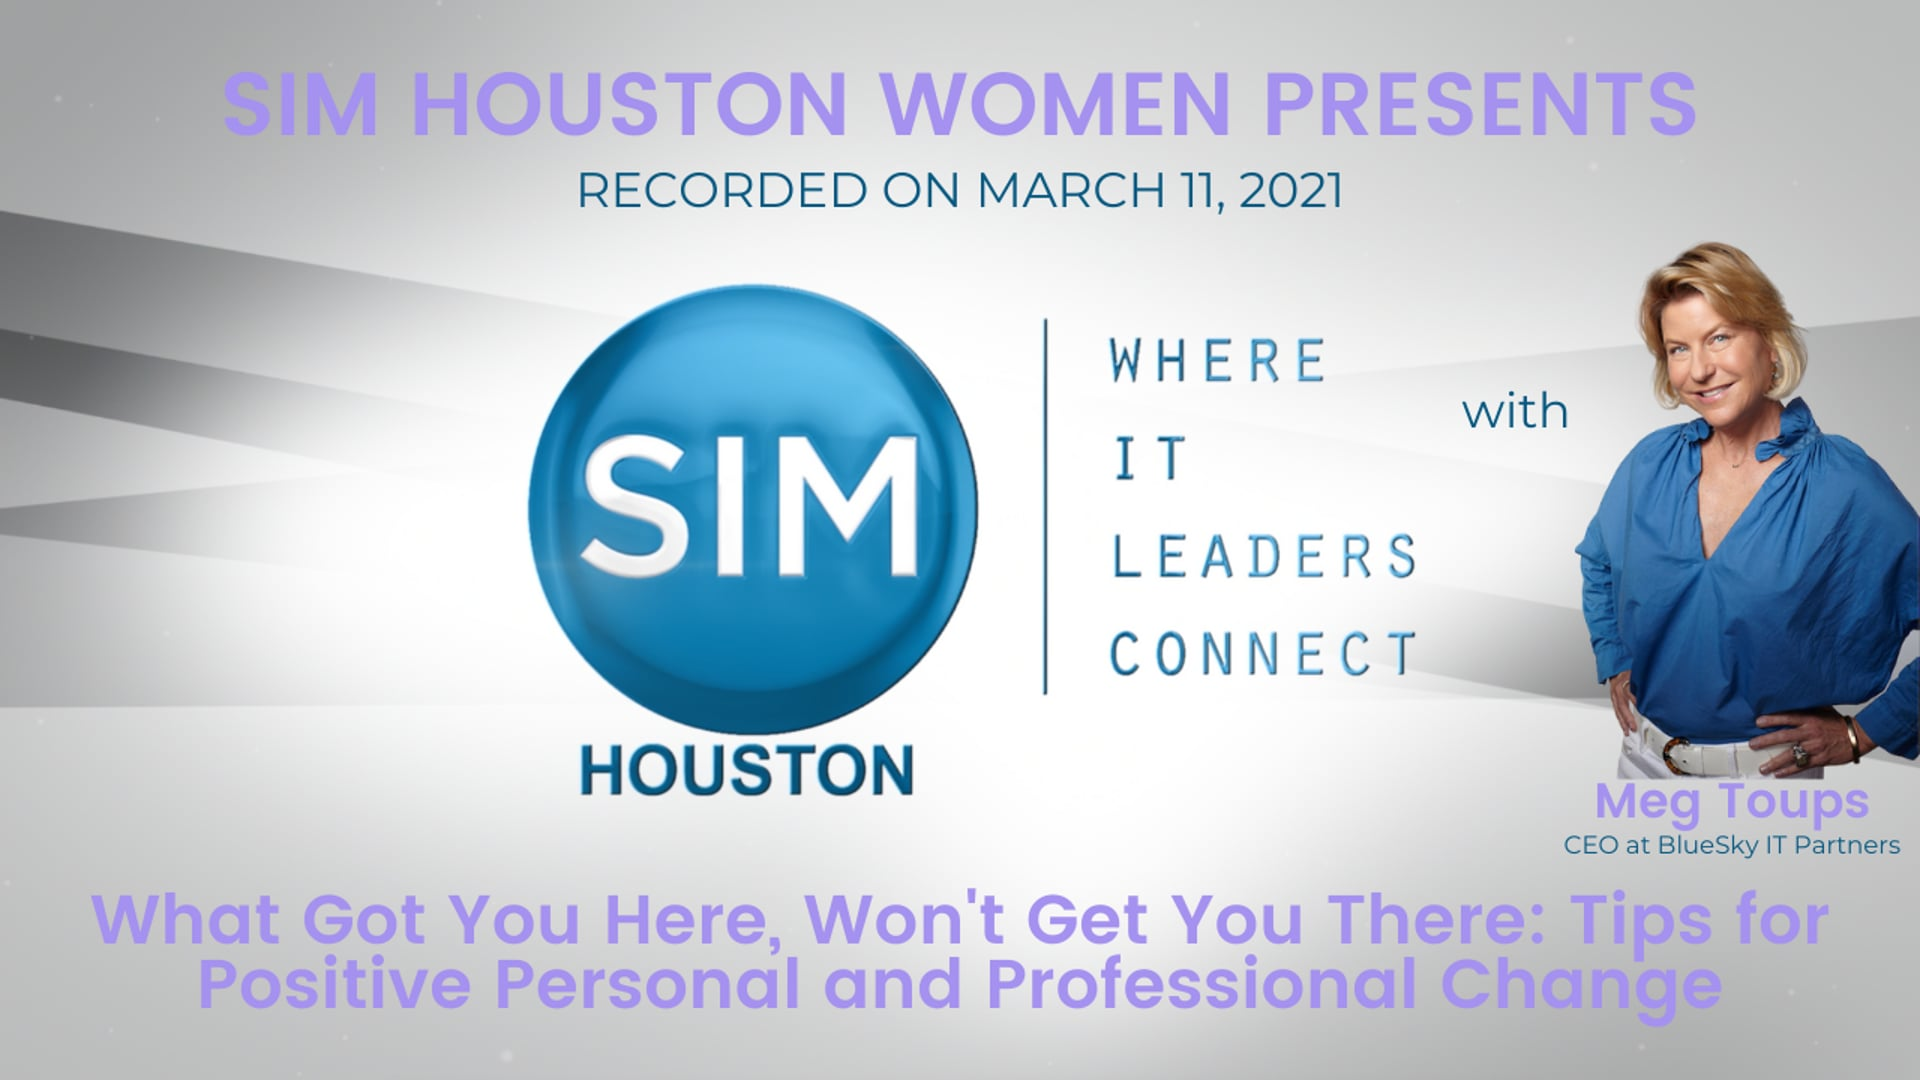 SIM Women Presents: What Got You Here, Won't Get You There Featuring Meg Toups